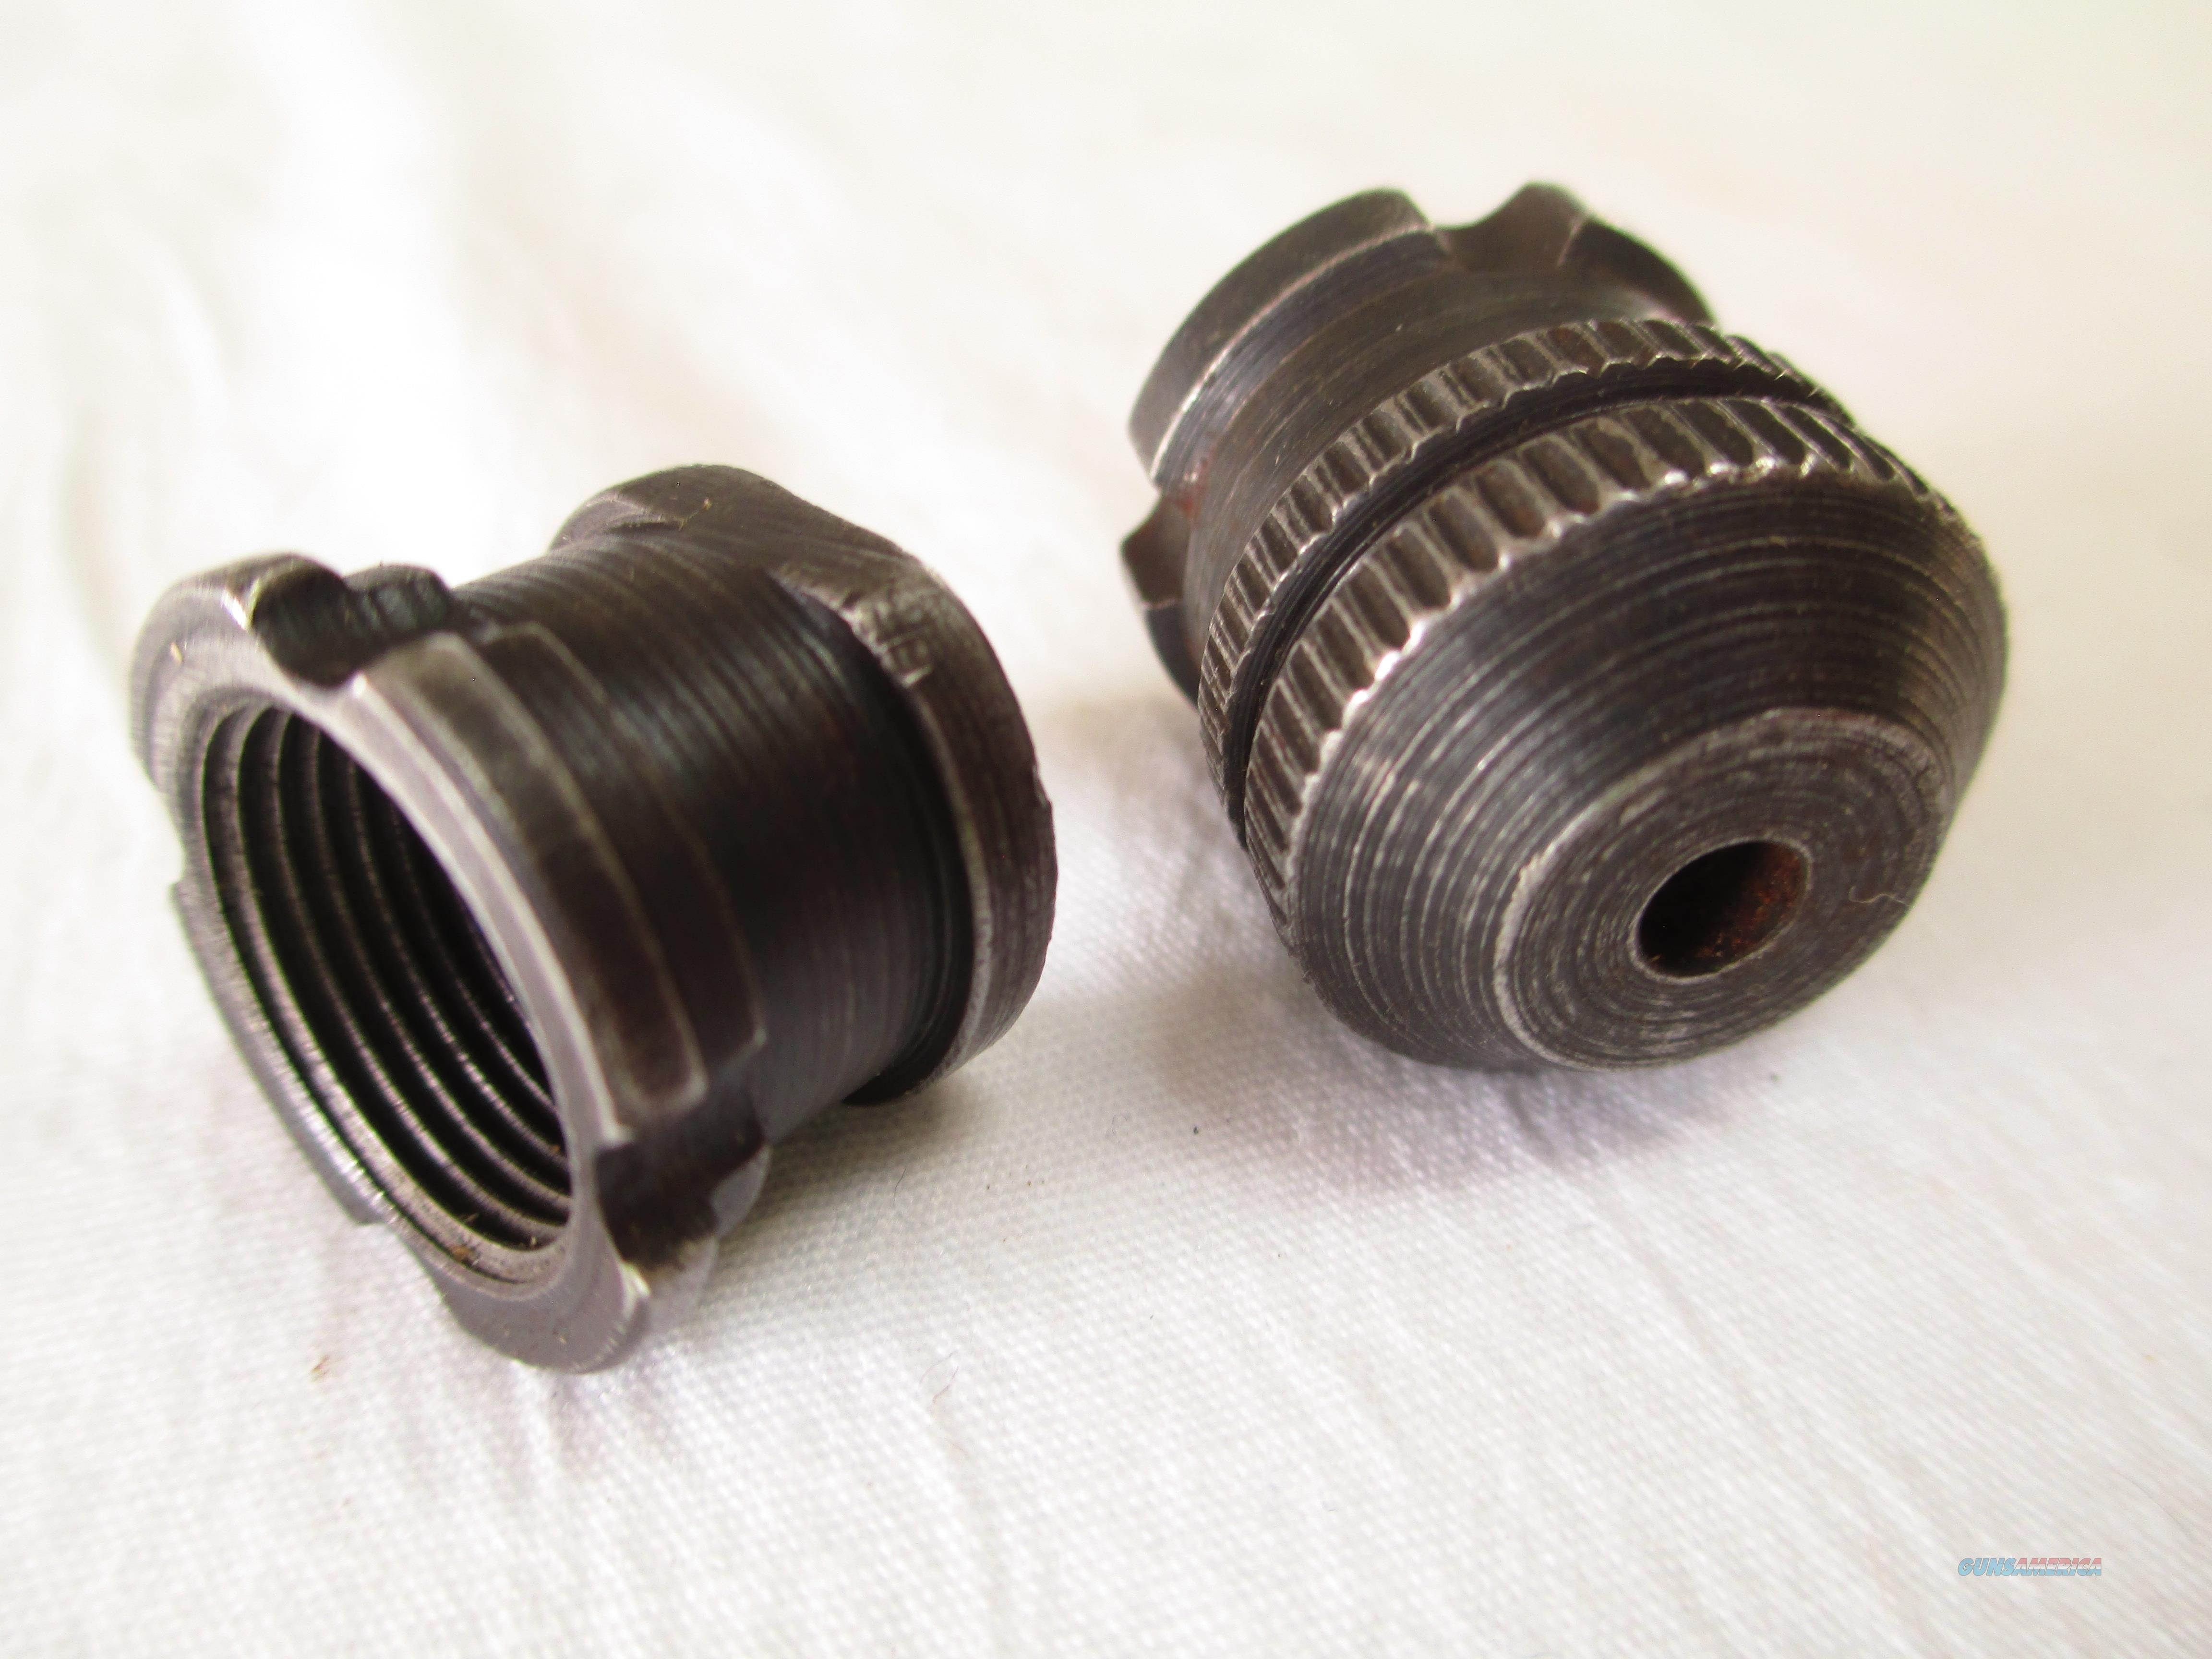 VZ58 MUZZLE NUT AND BLANK FIRING DEVICE SET  Non-Guns > Gun Parts > Military - Foreign